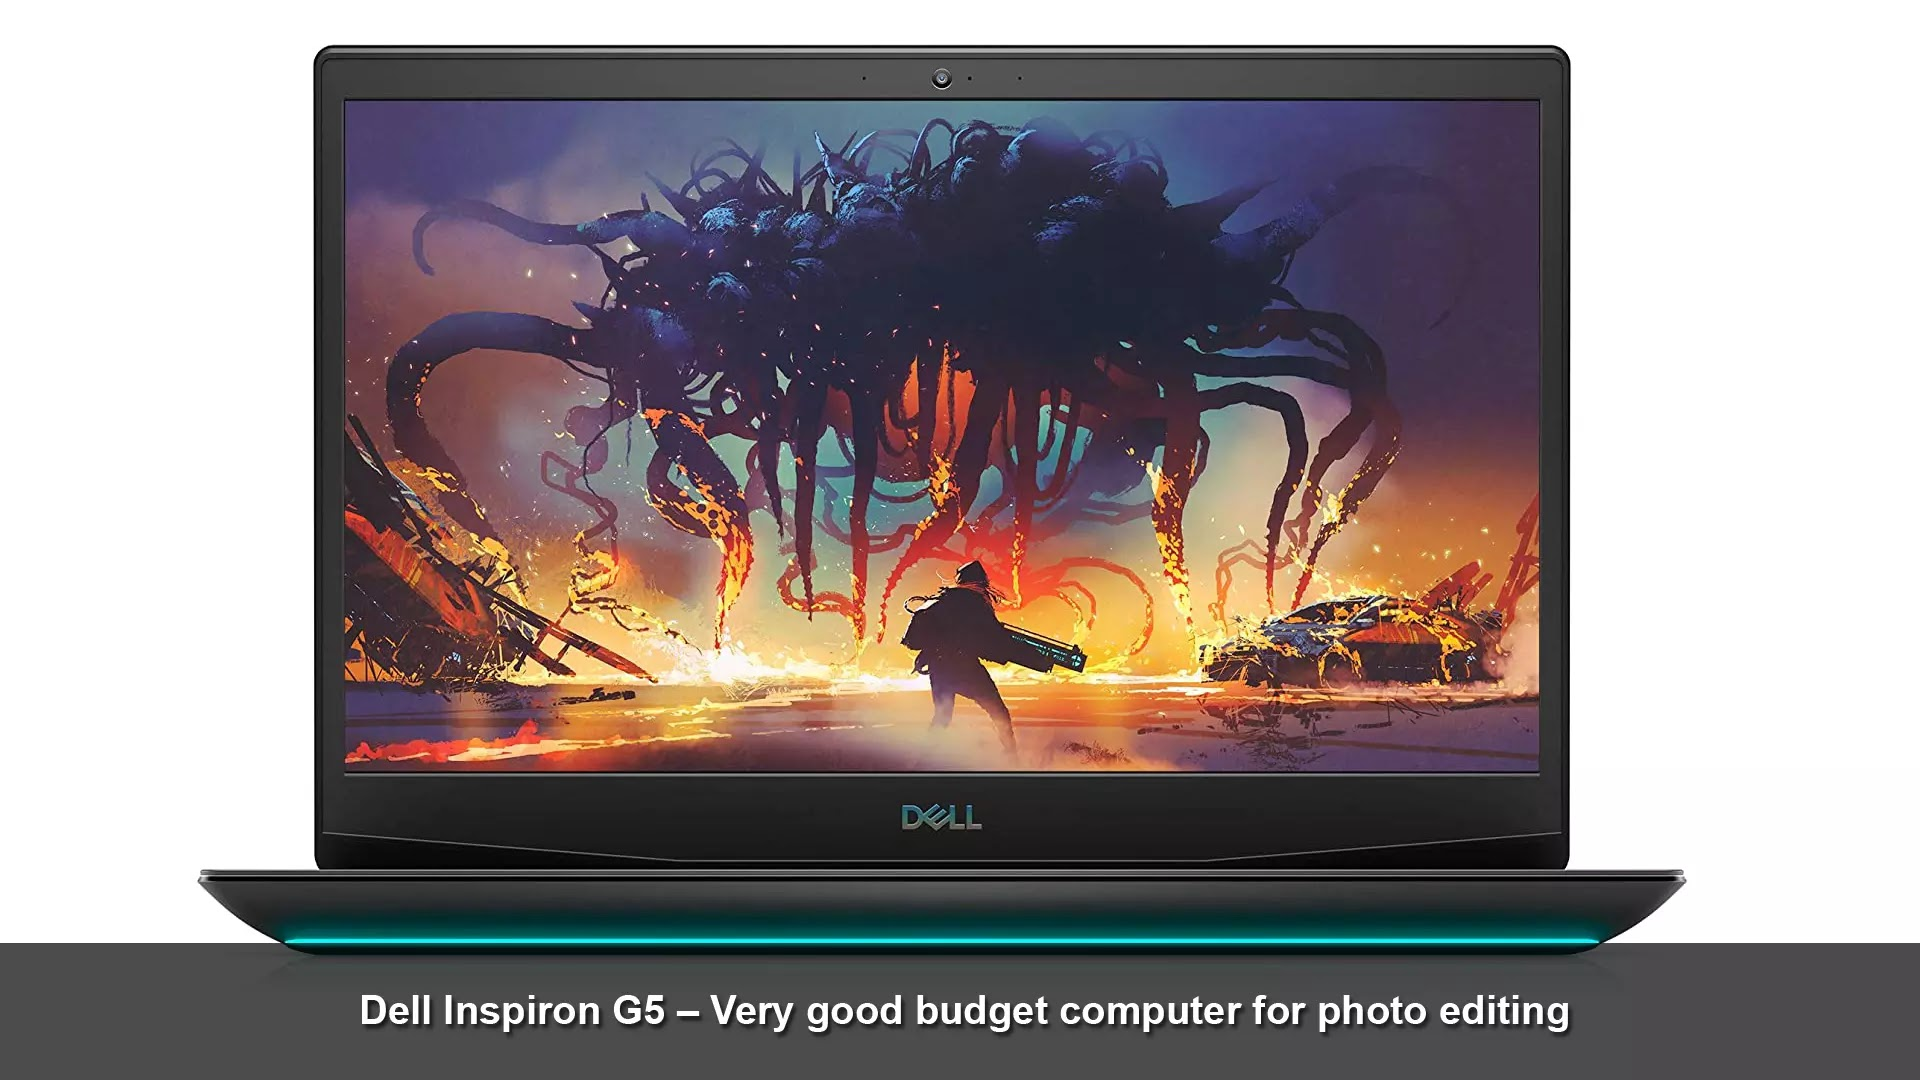 Dell Inspiron G5 – very good budget computer for photo editing